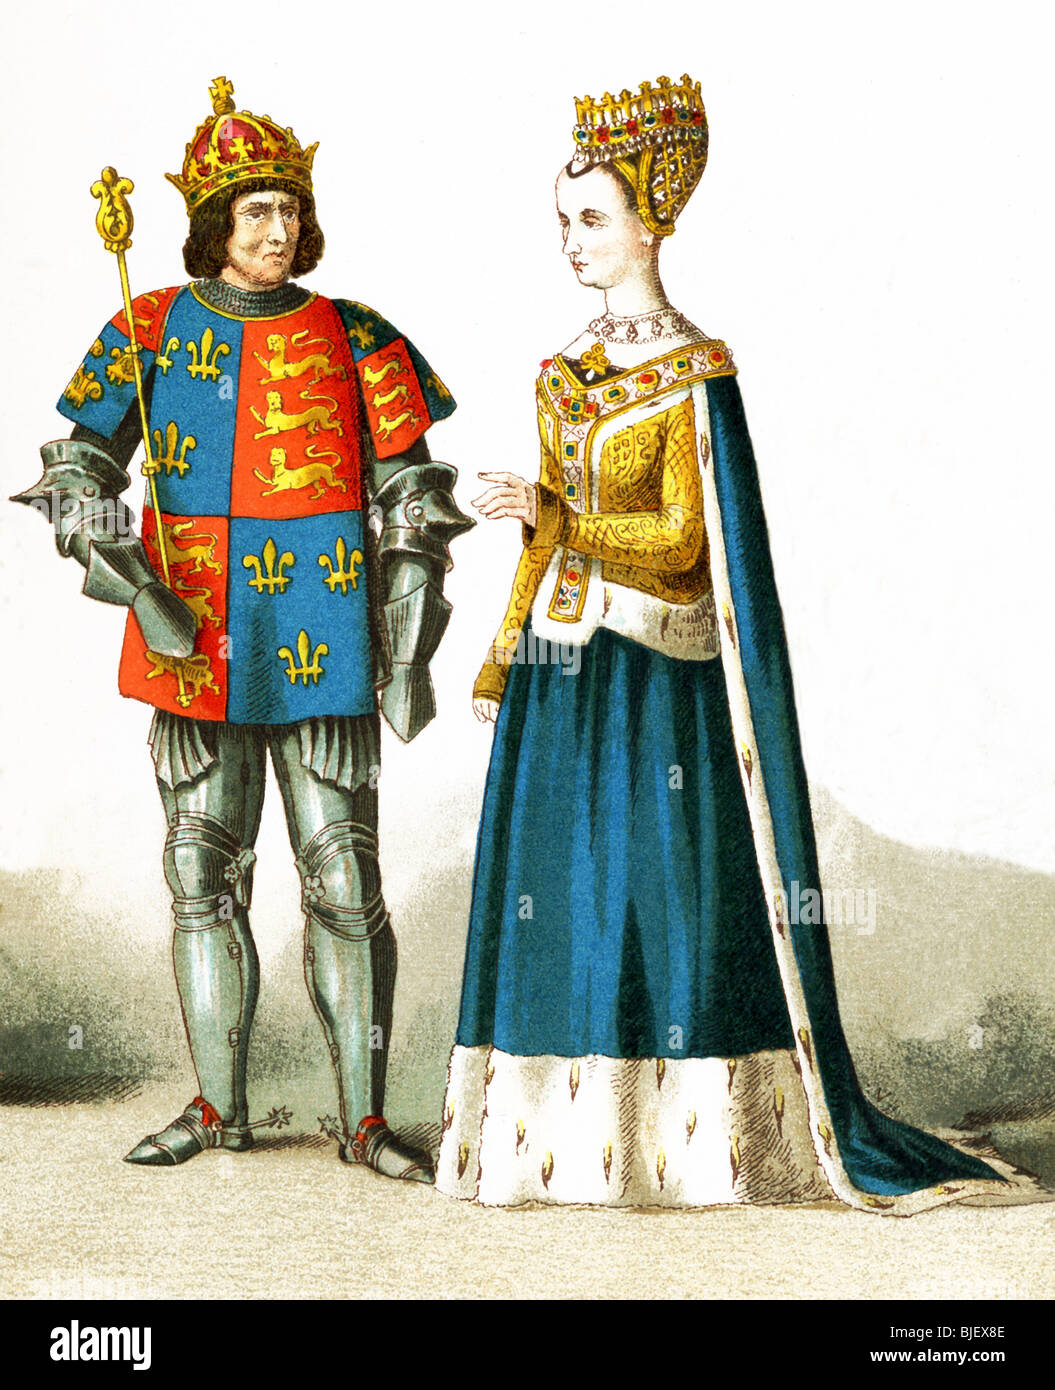 This illustration shows England's King Richard III (killed on Bosworth Field, ending Wars of the Roses) with - Stock Image